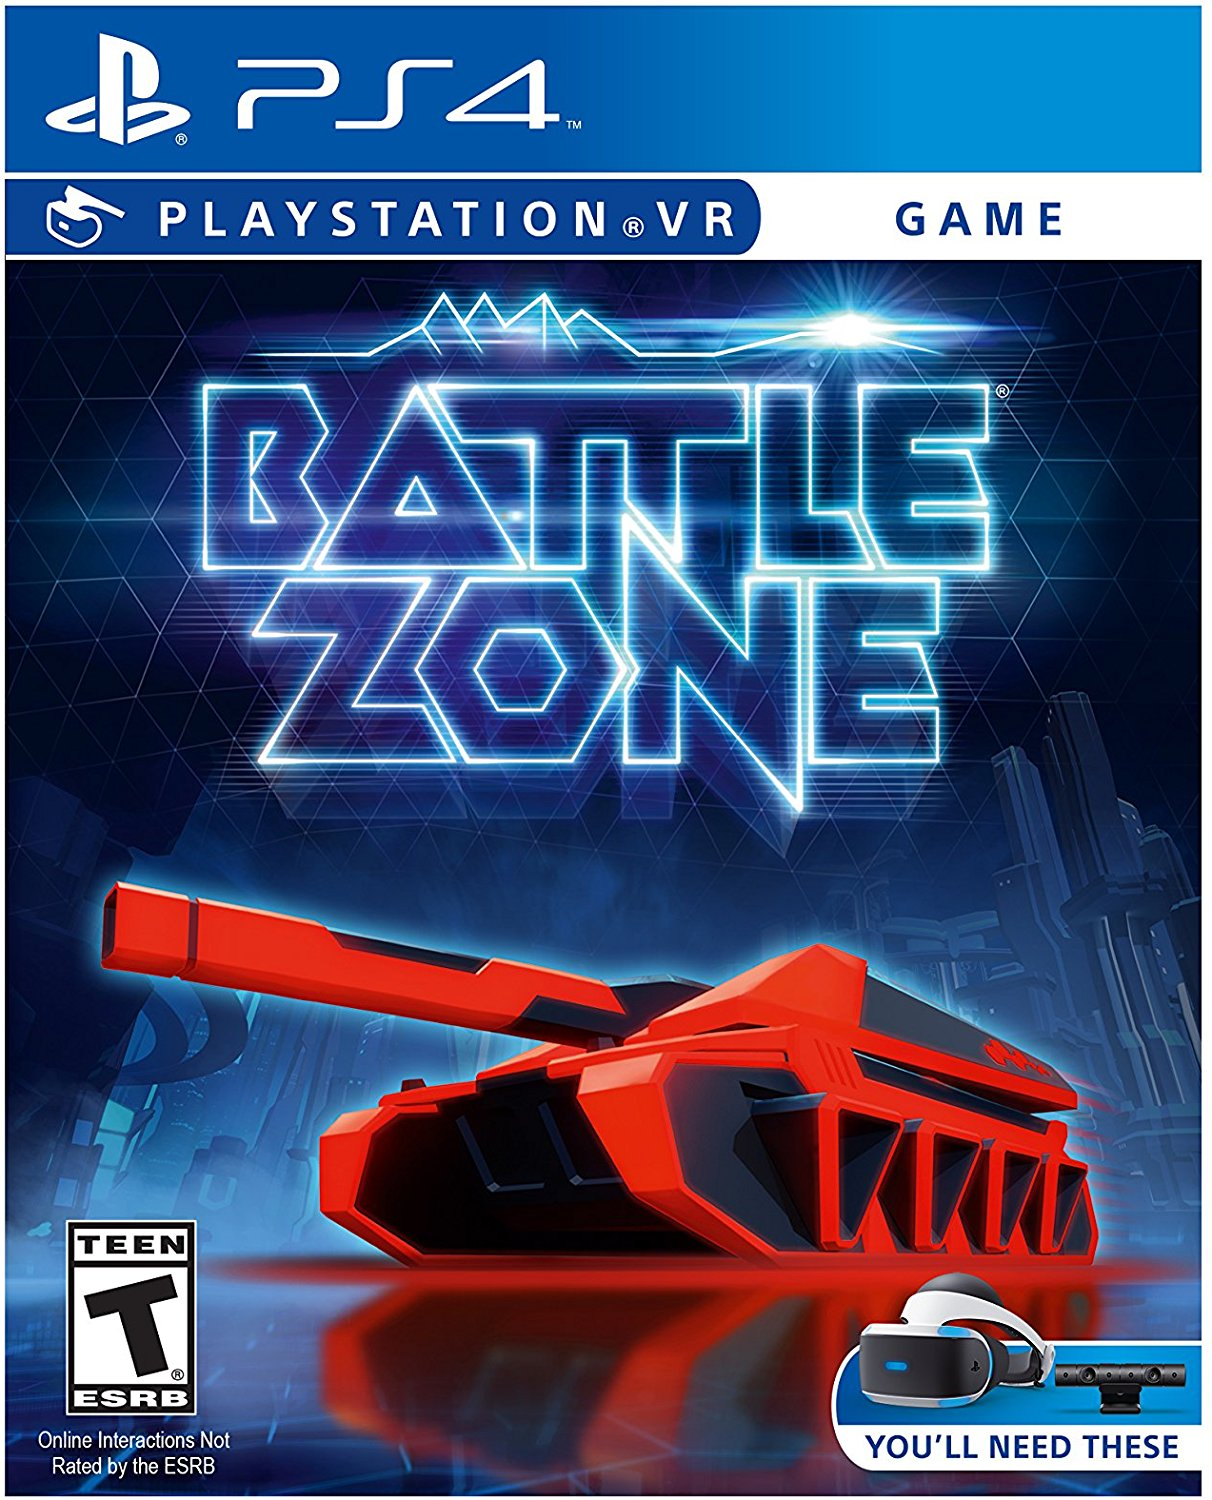 PS4 PSVR Battlezone